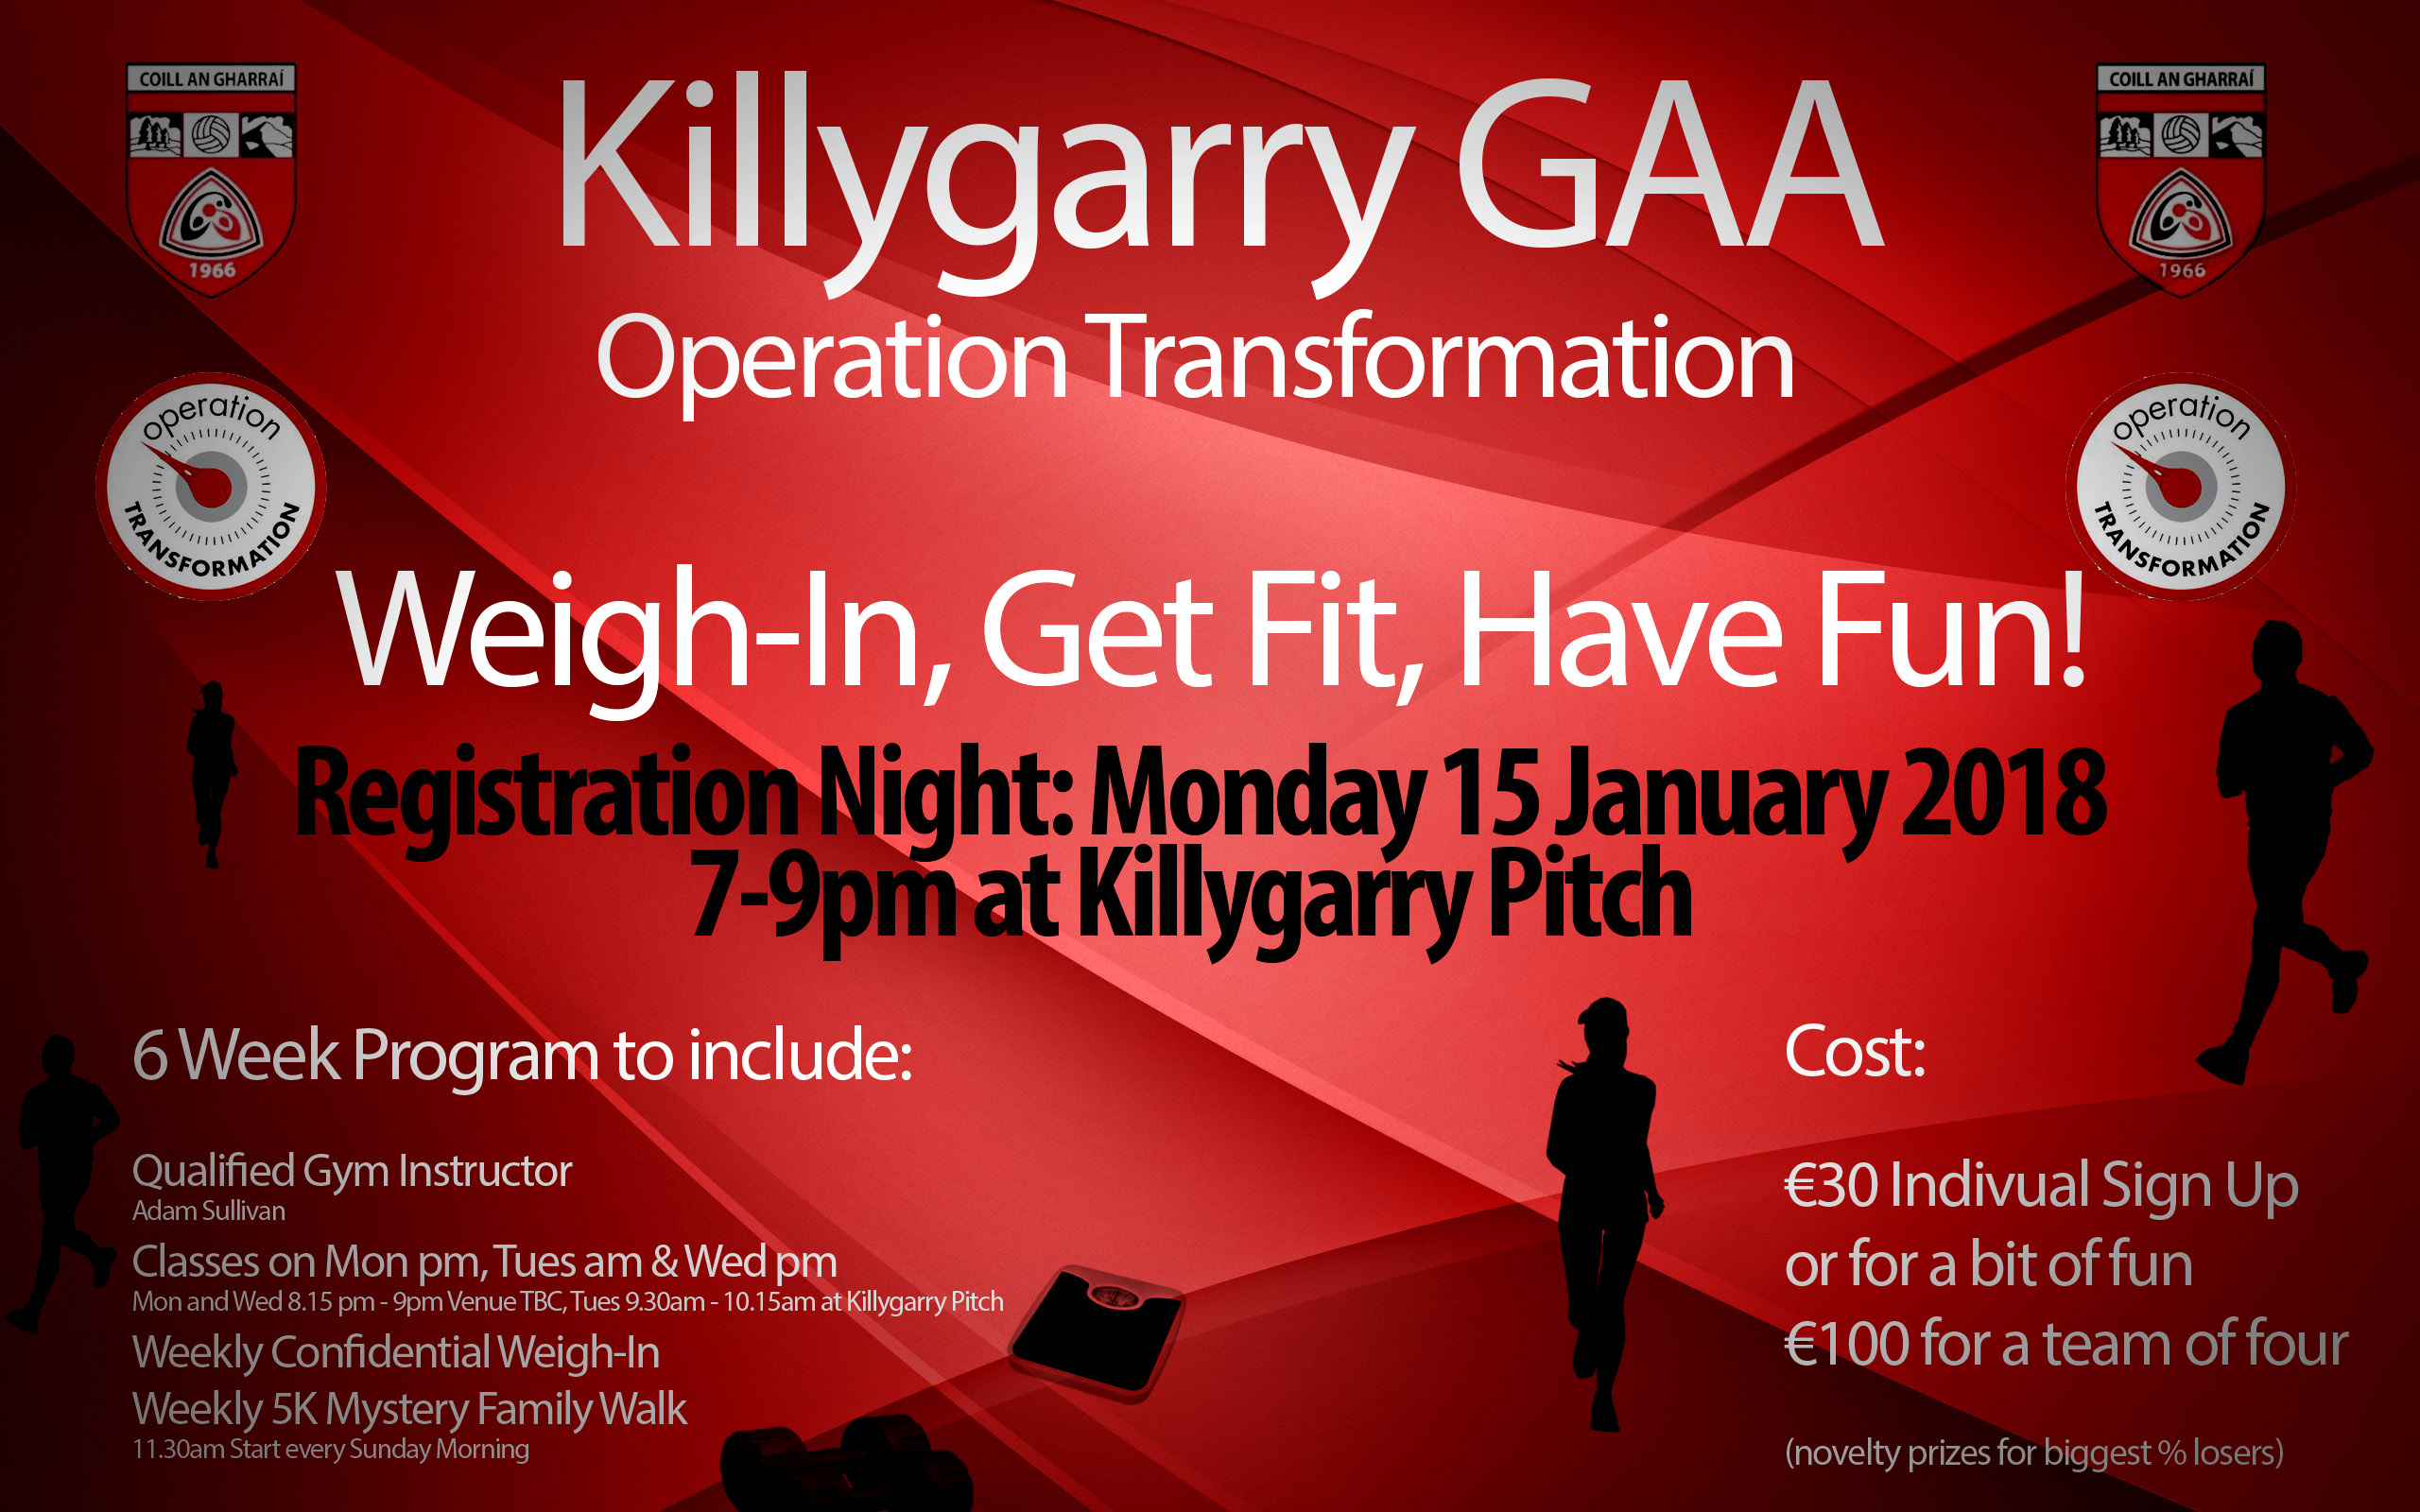 6 Week Program – Killygarry GAA Operation Transformation